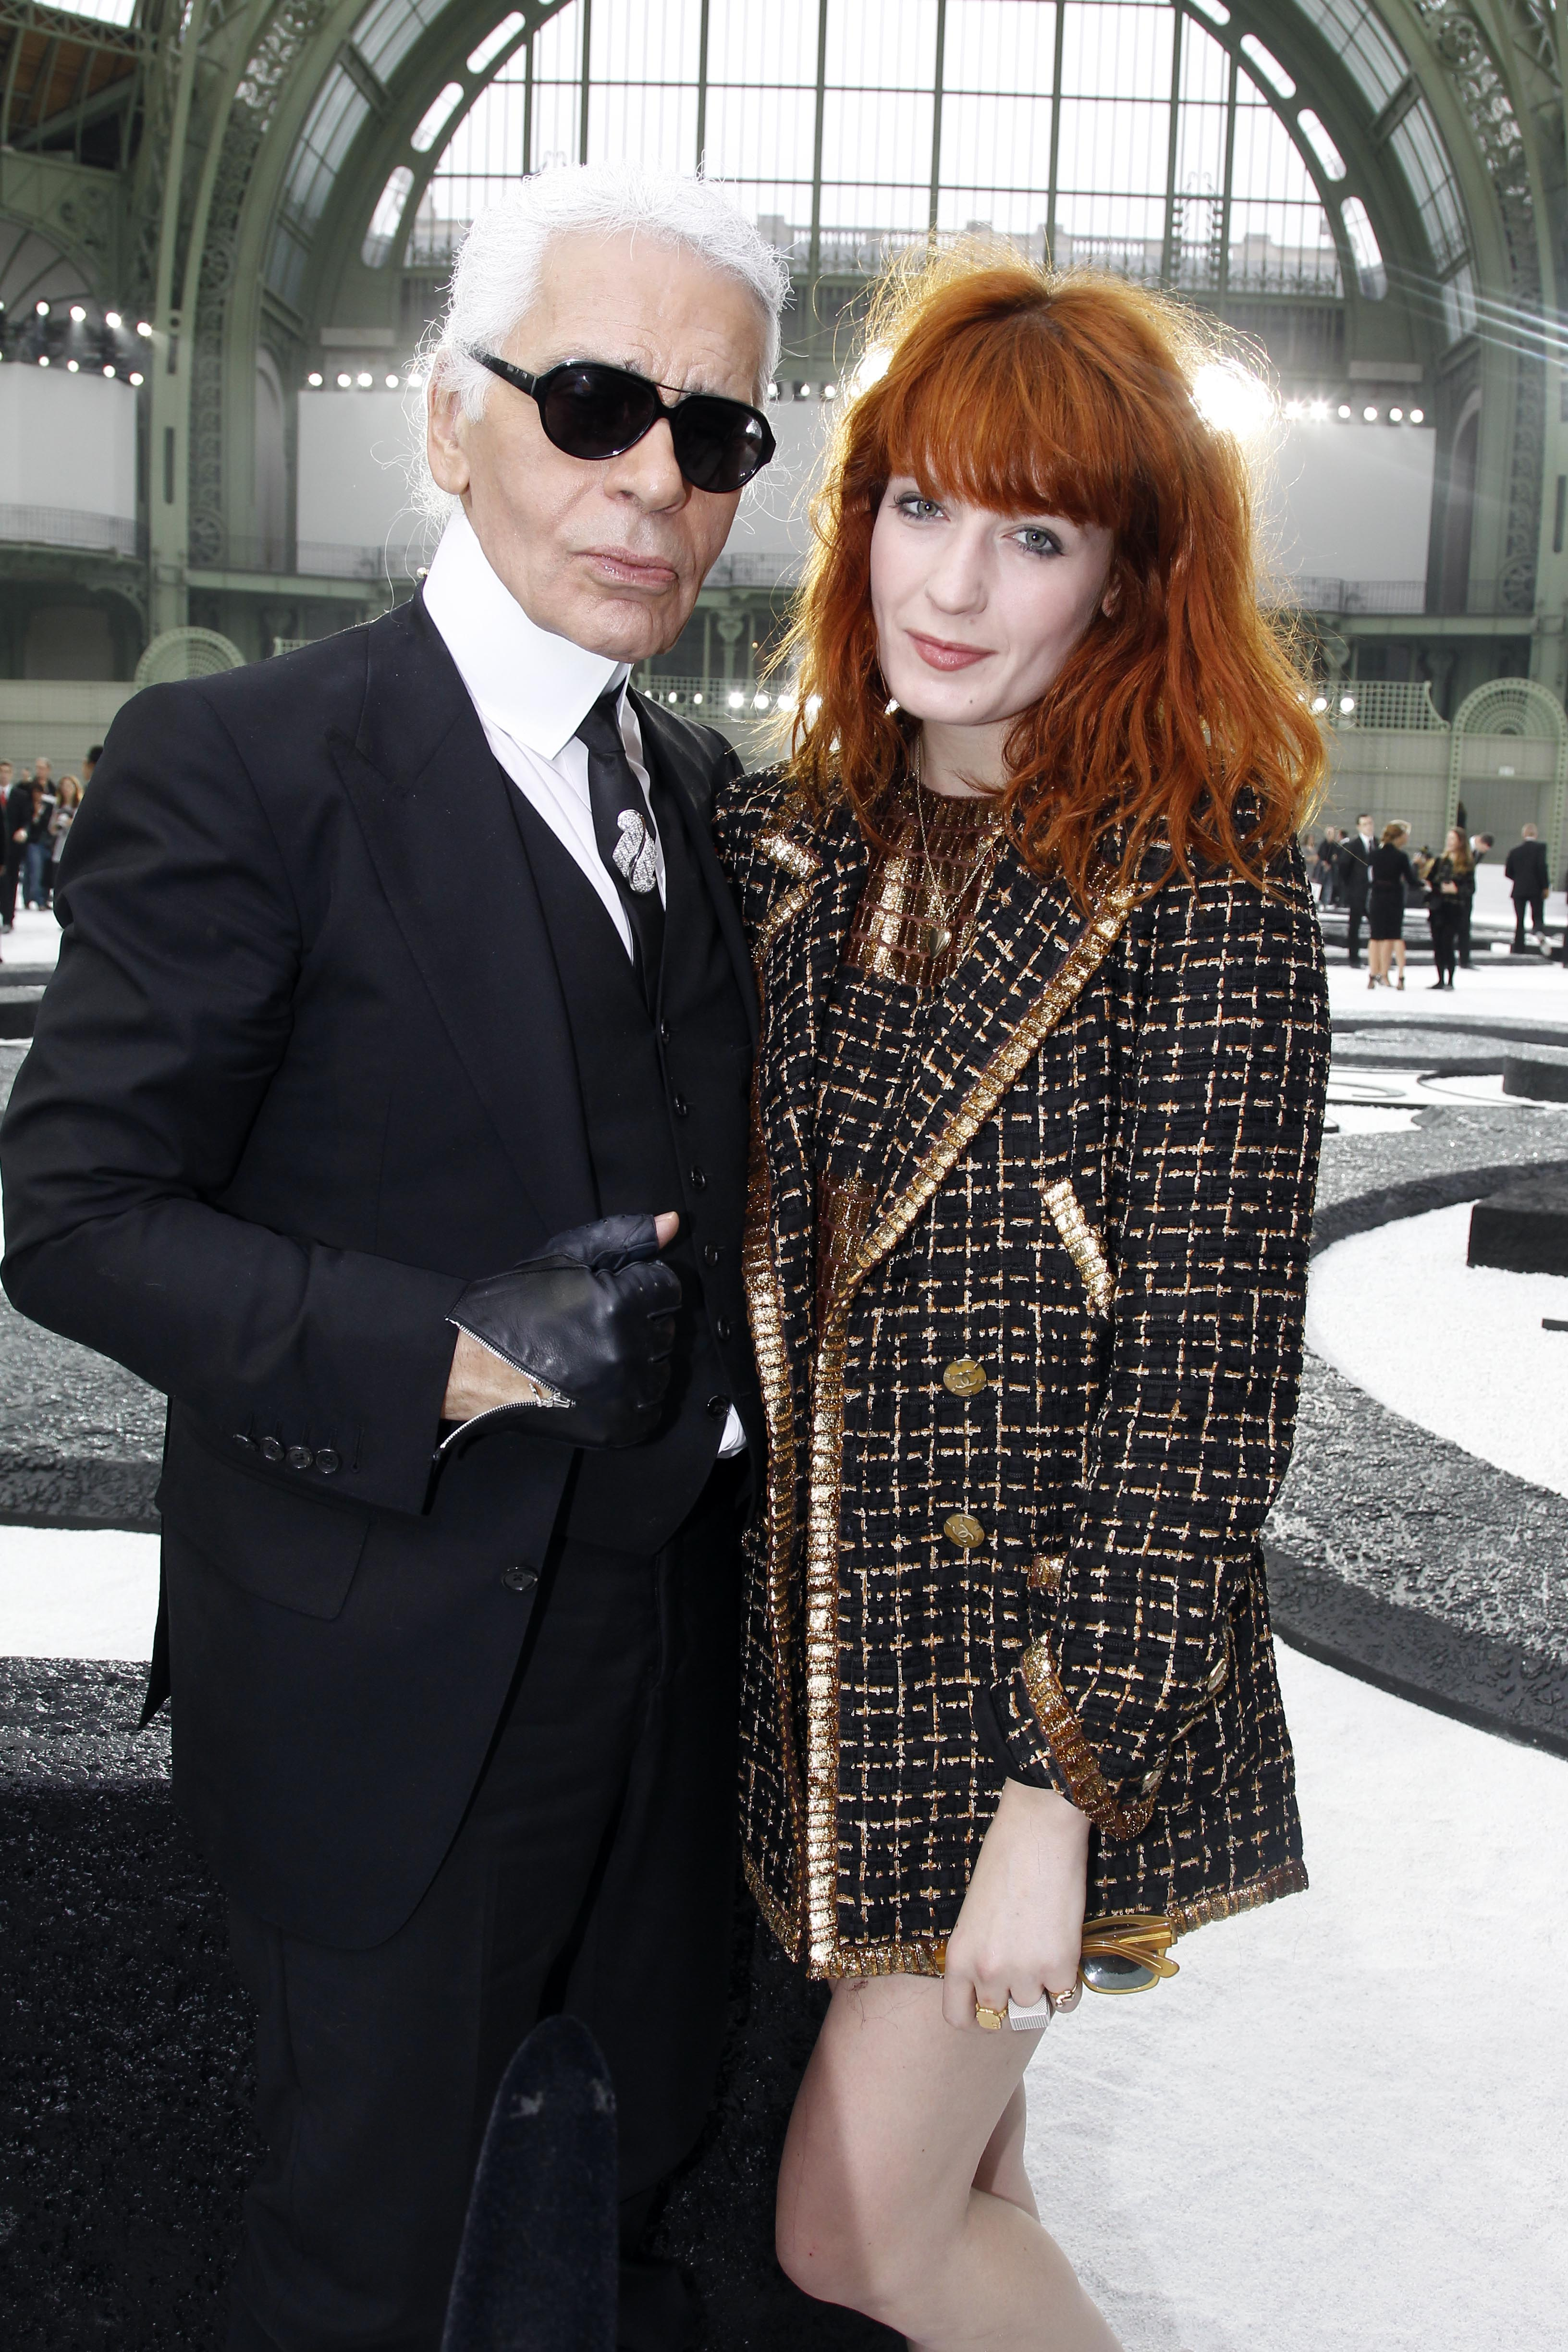 Florence Welch and Karl Lagerfeld